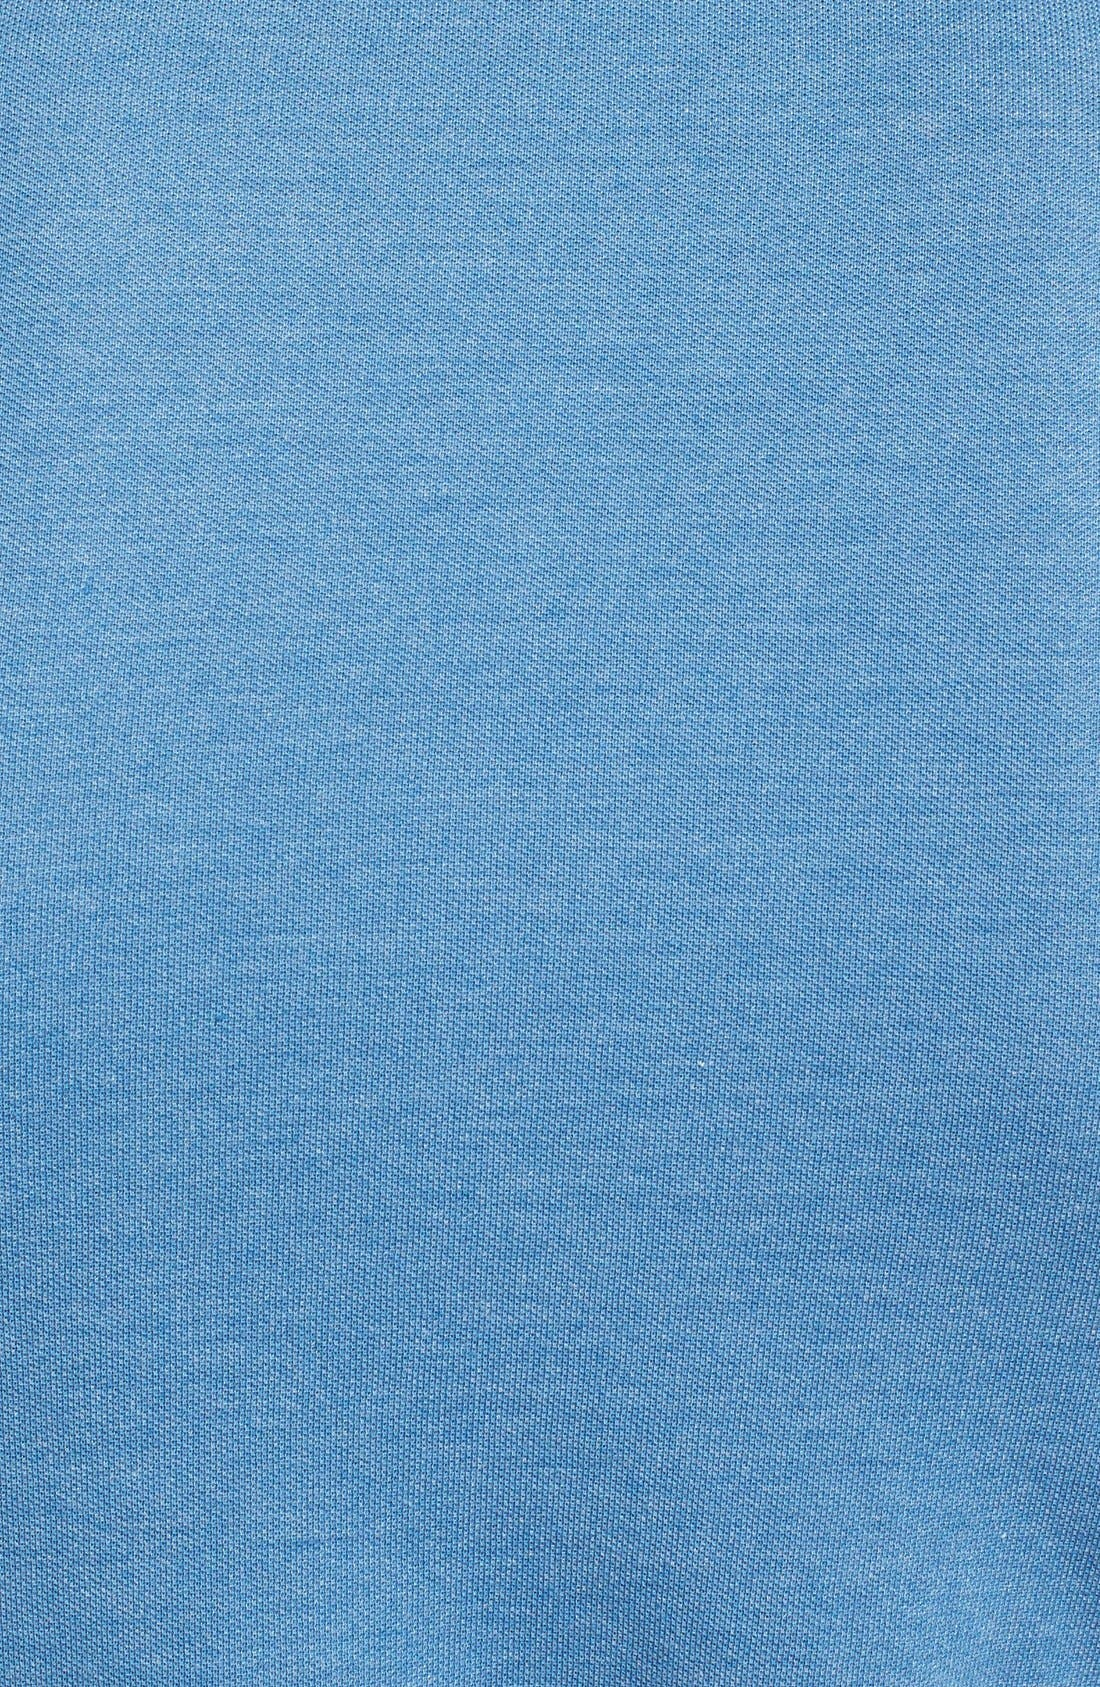 Alternate Image 3  - TOPMAN BLUE BARLOW POLO